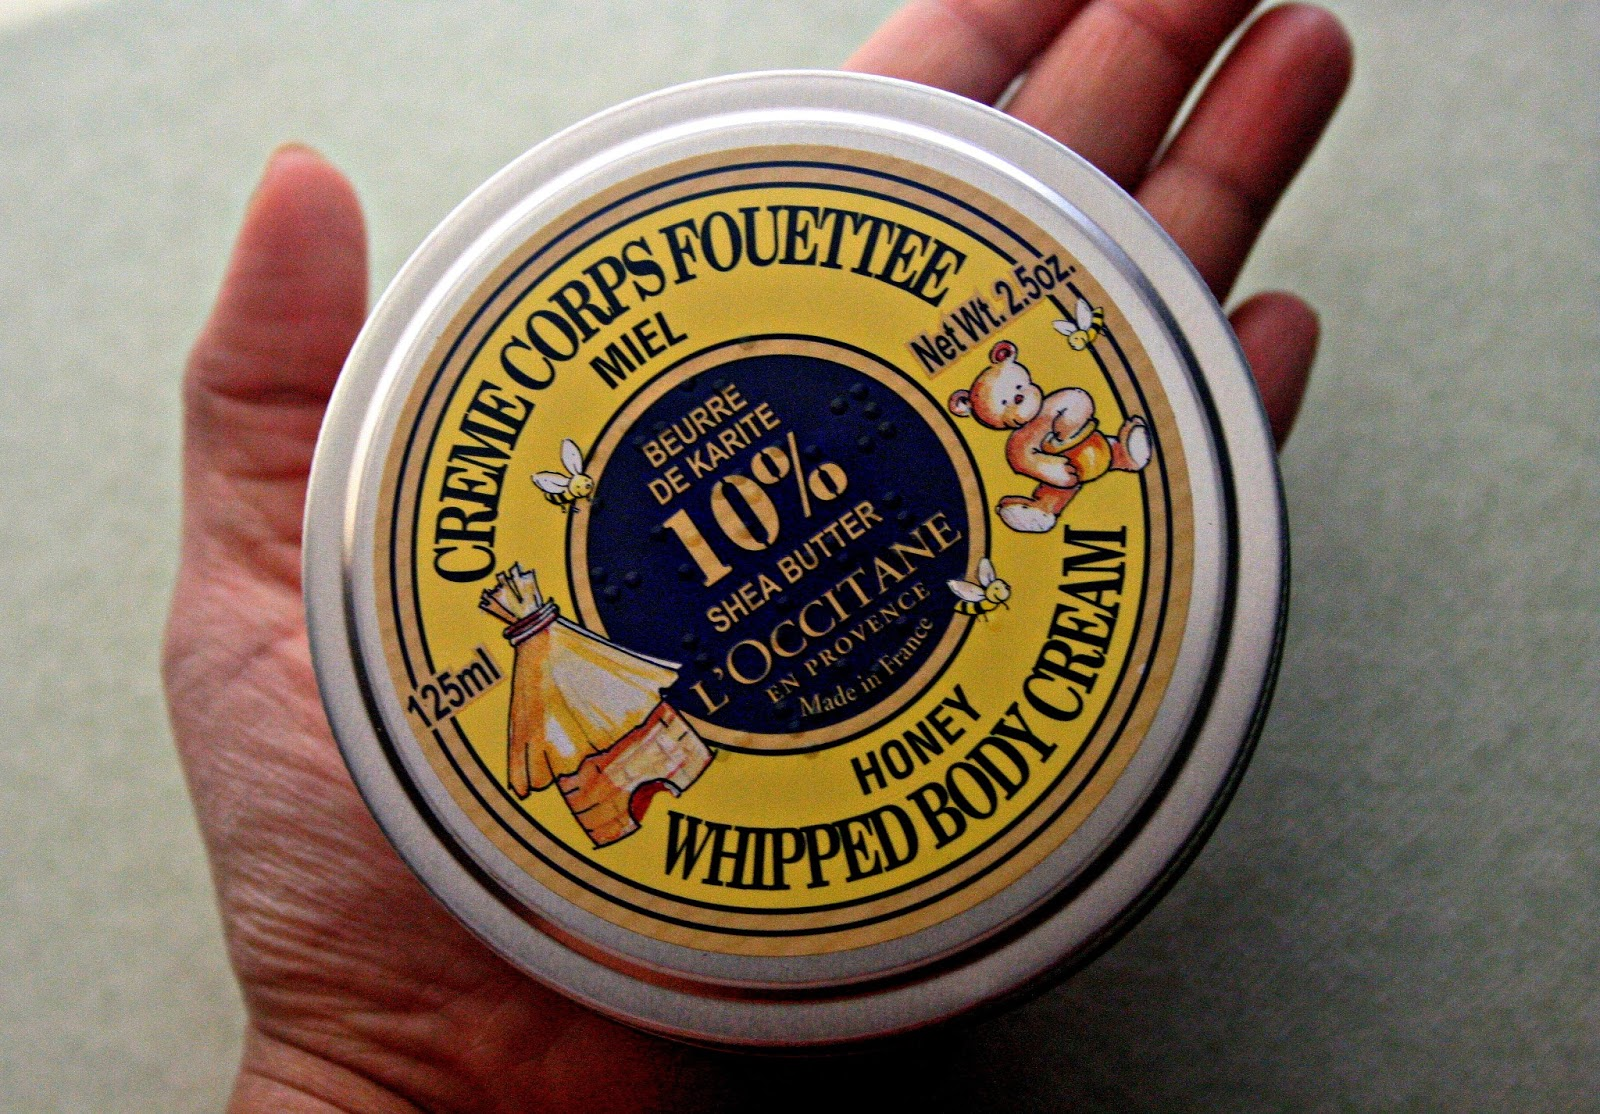 L'Occitane Shea Butter Honey Whipped Body Cream